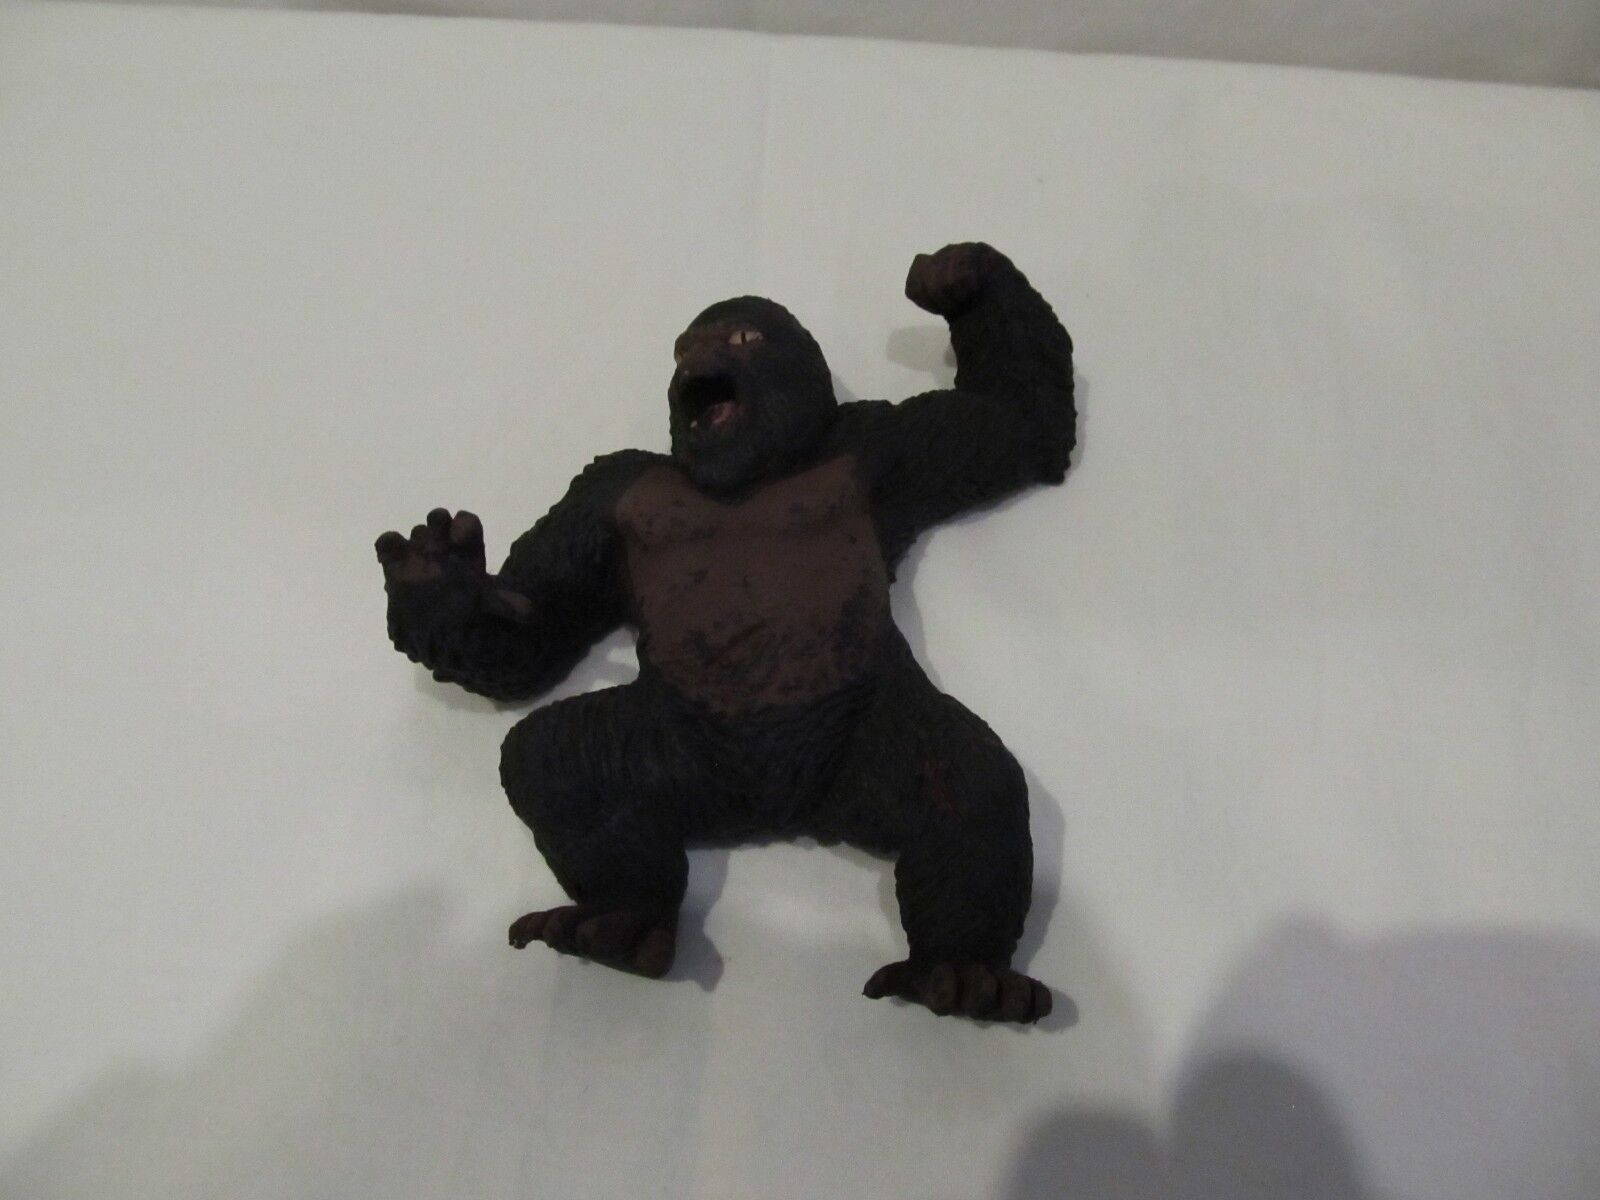 KING KONG UNIVERSAL STUDIOS FIGURE MADE OF RUBBER A RARE ITEM 2005